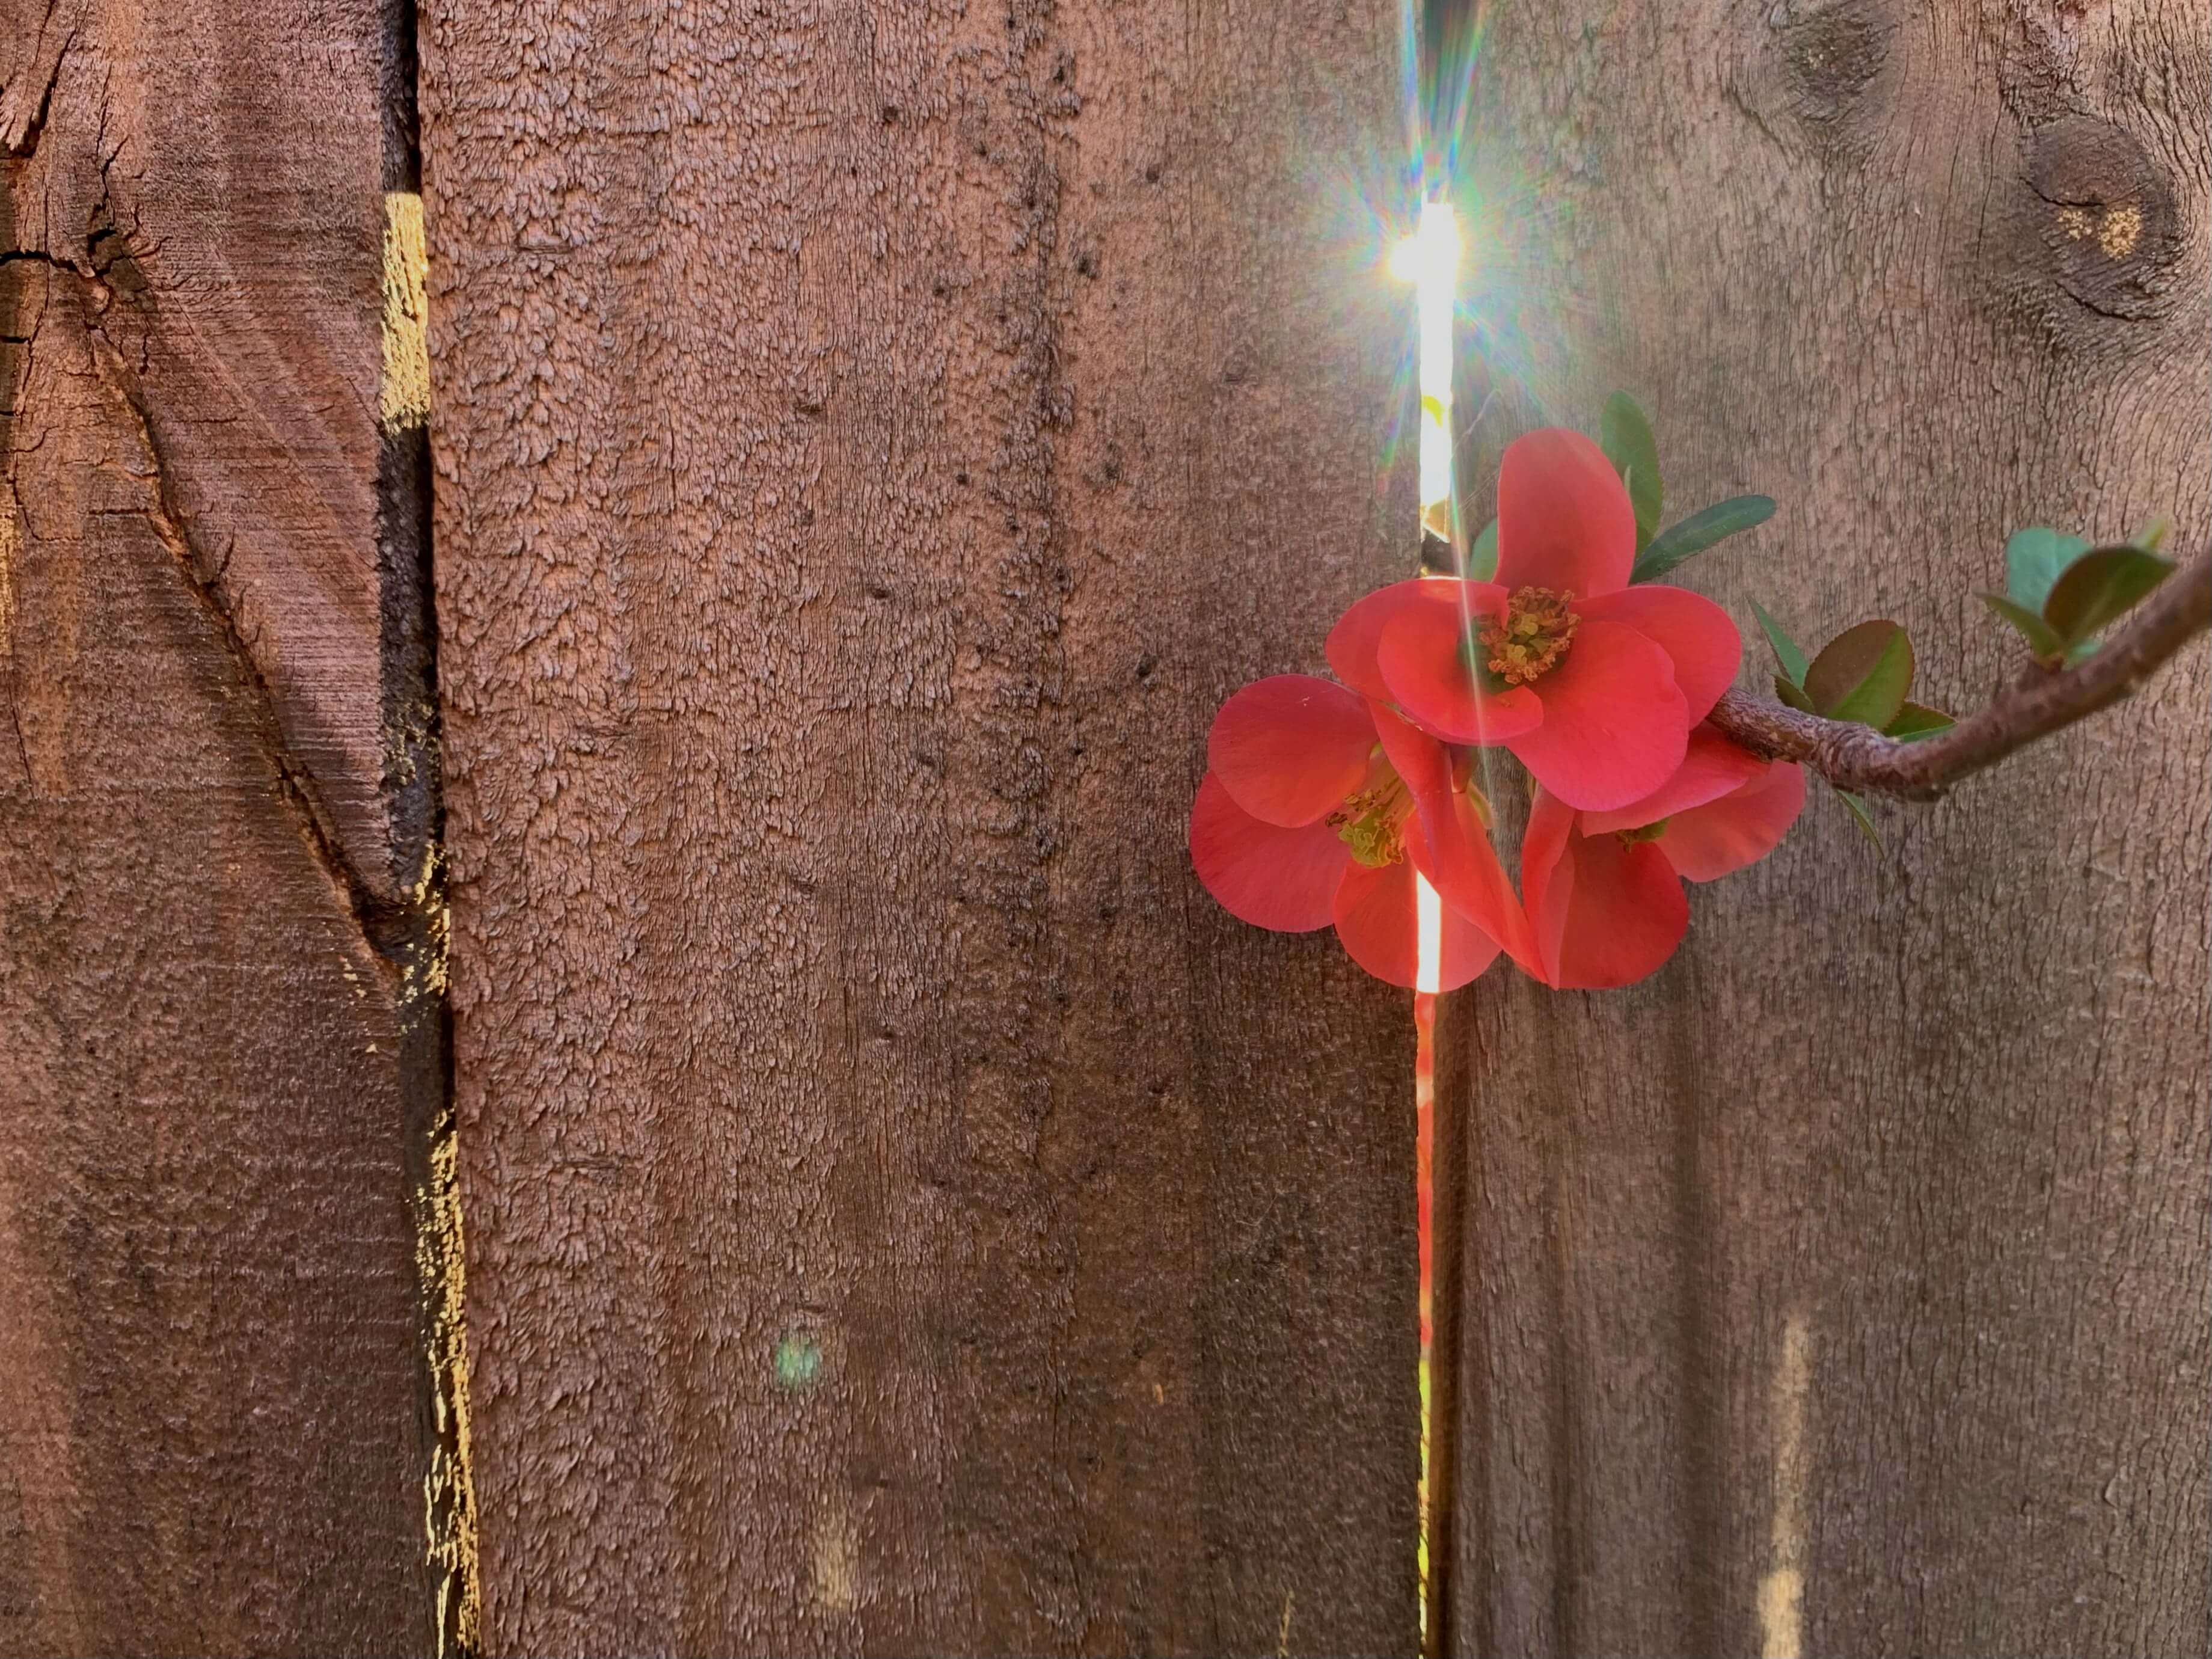 close up photo of tiny flowers and sunshine streaming through a hole in a wooden fence